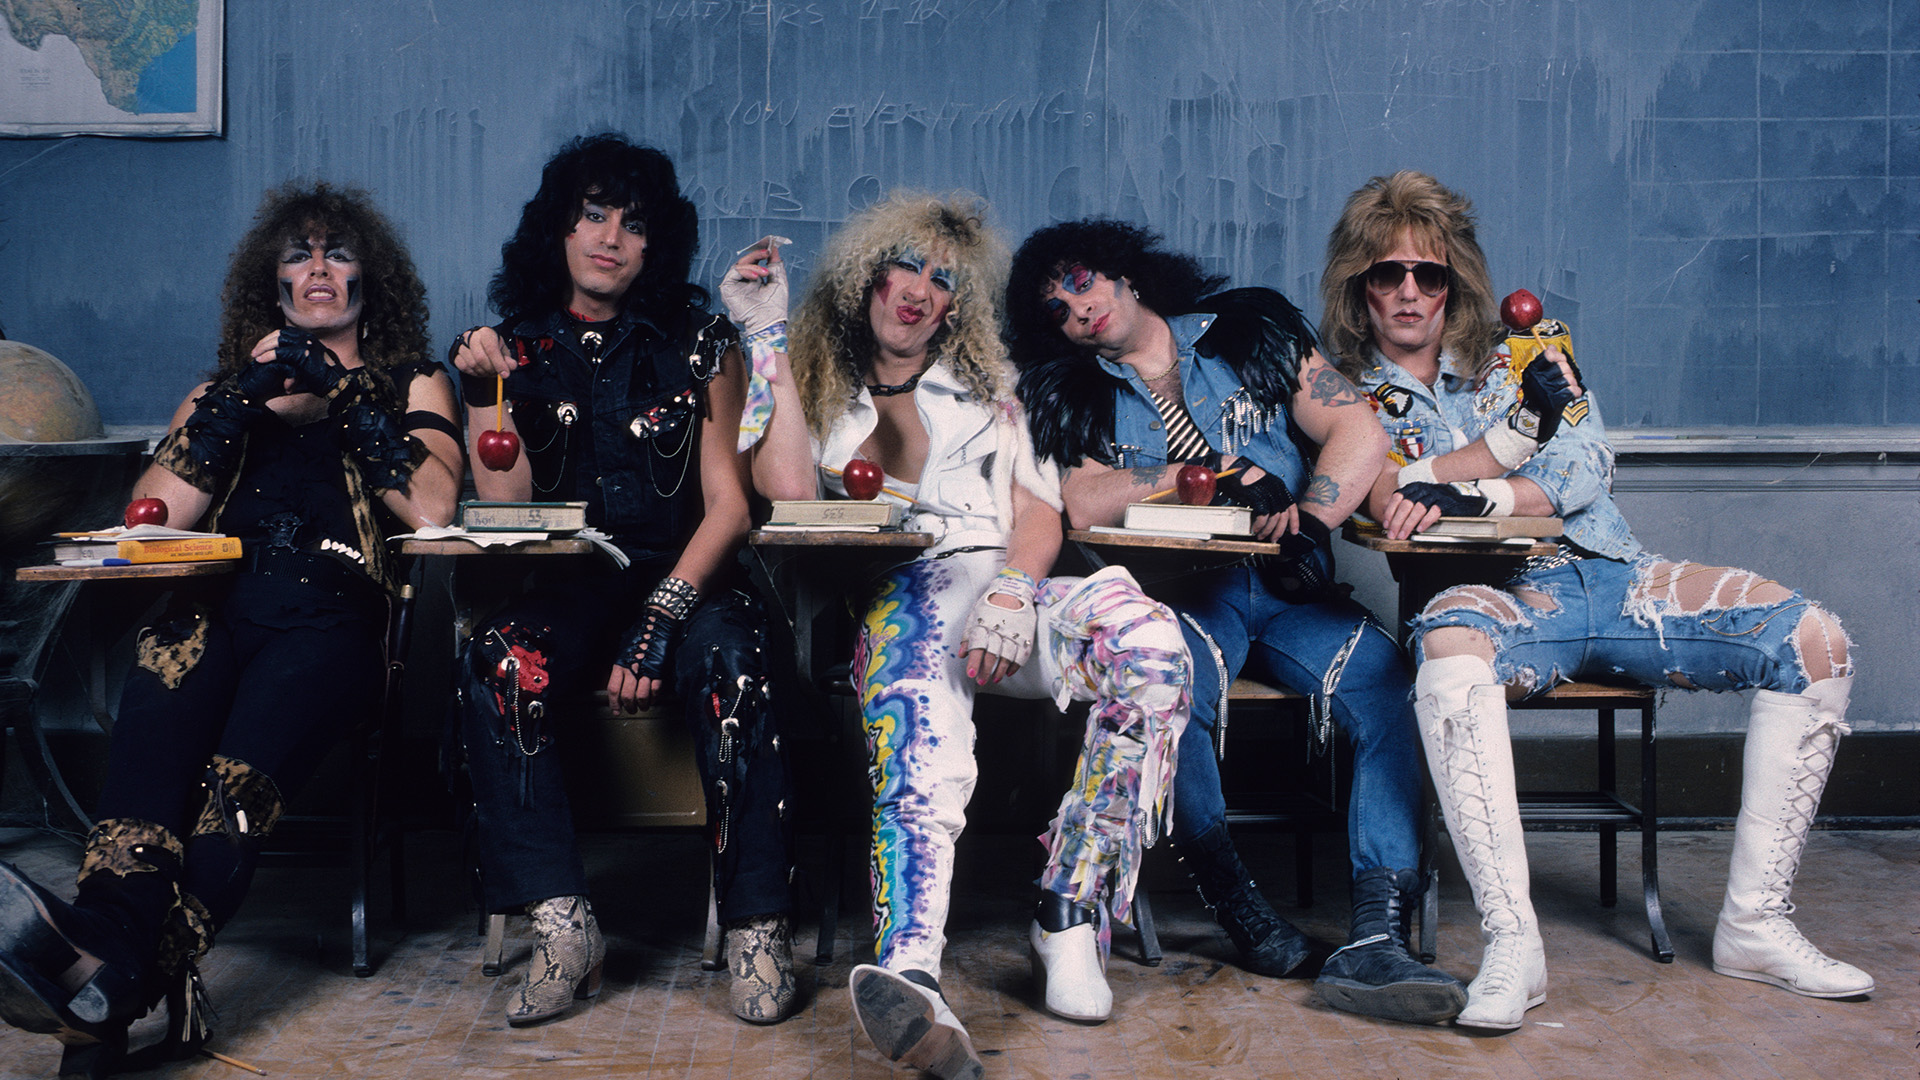 Twisted Sister Full HD Wallpaper And Background Image